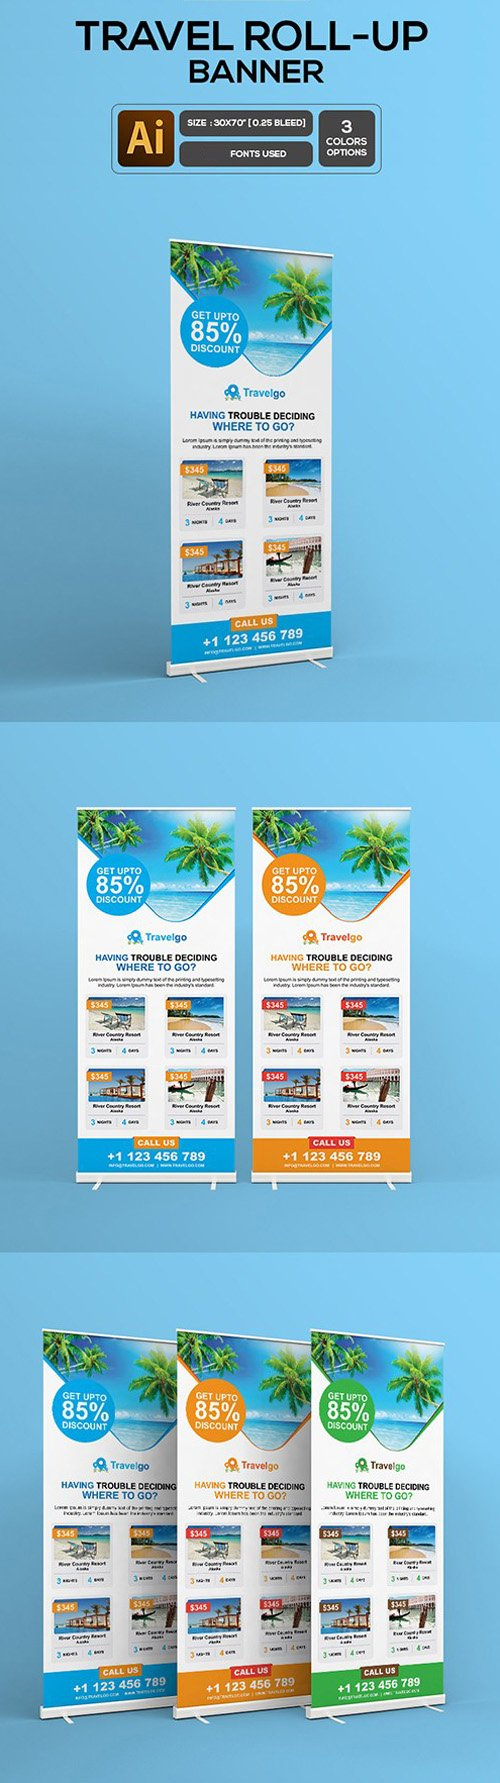 3 Travel Roll-up Banner Template in Vector